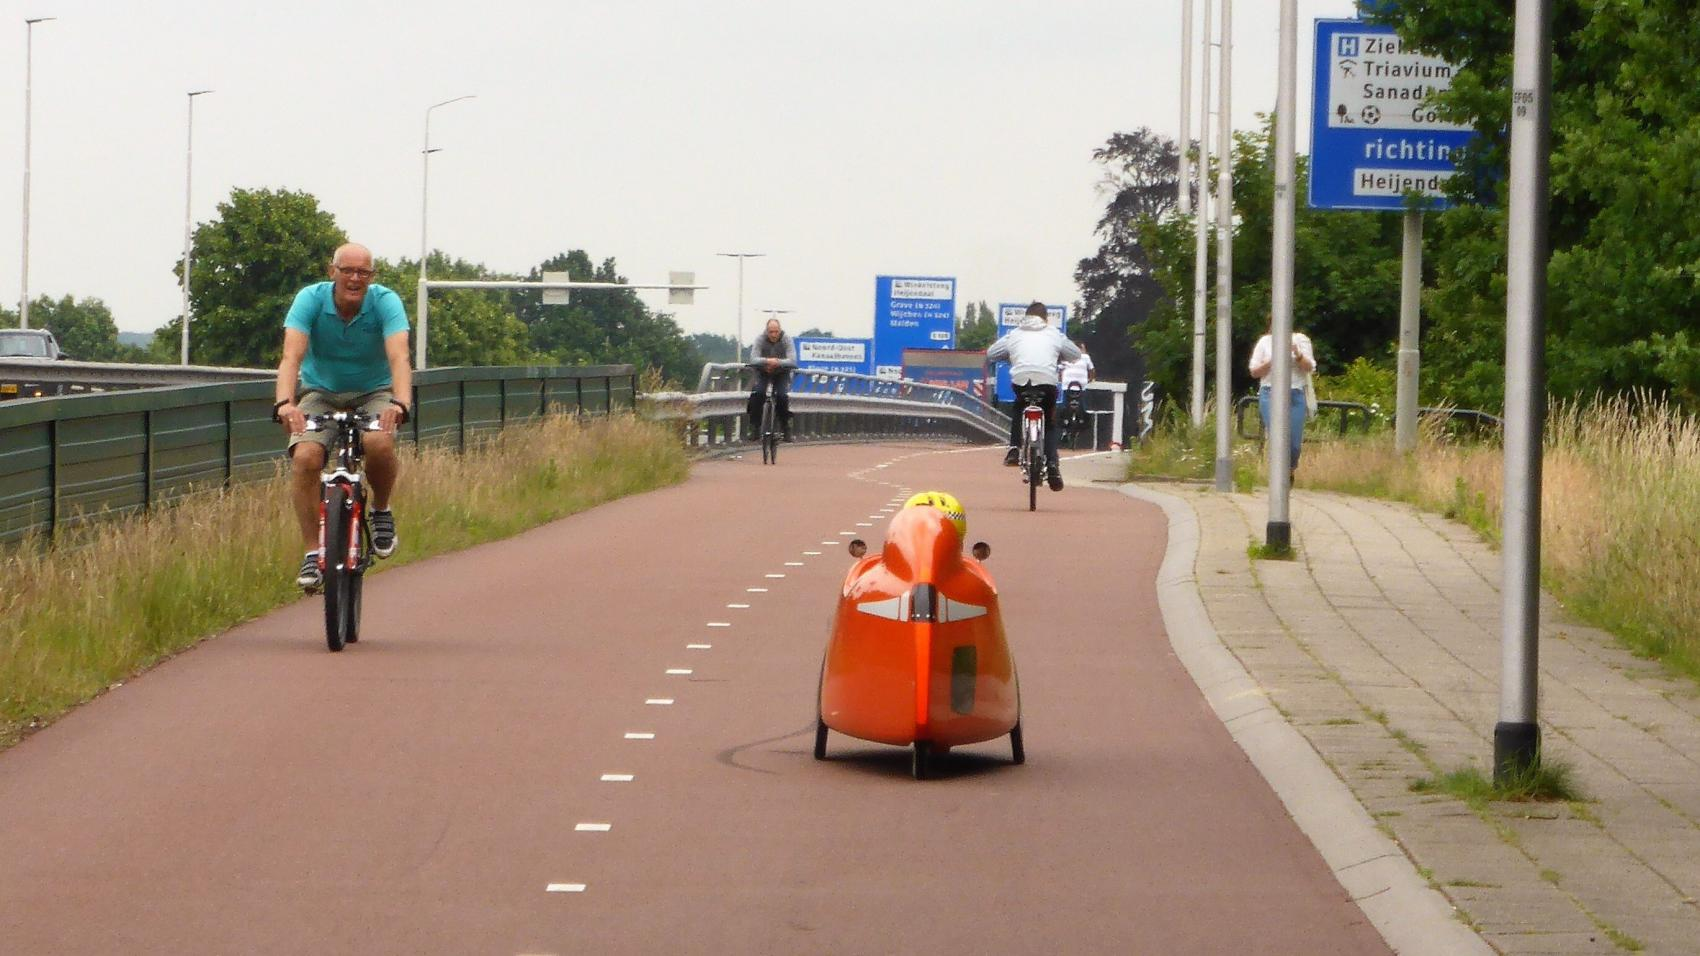 Bridge over the Maas-Waal canal. Low barrier between the carriageway and the cycling path reduces the noise from cars, but does not affect negatively social safety.